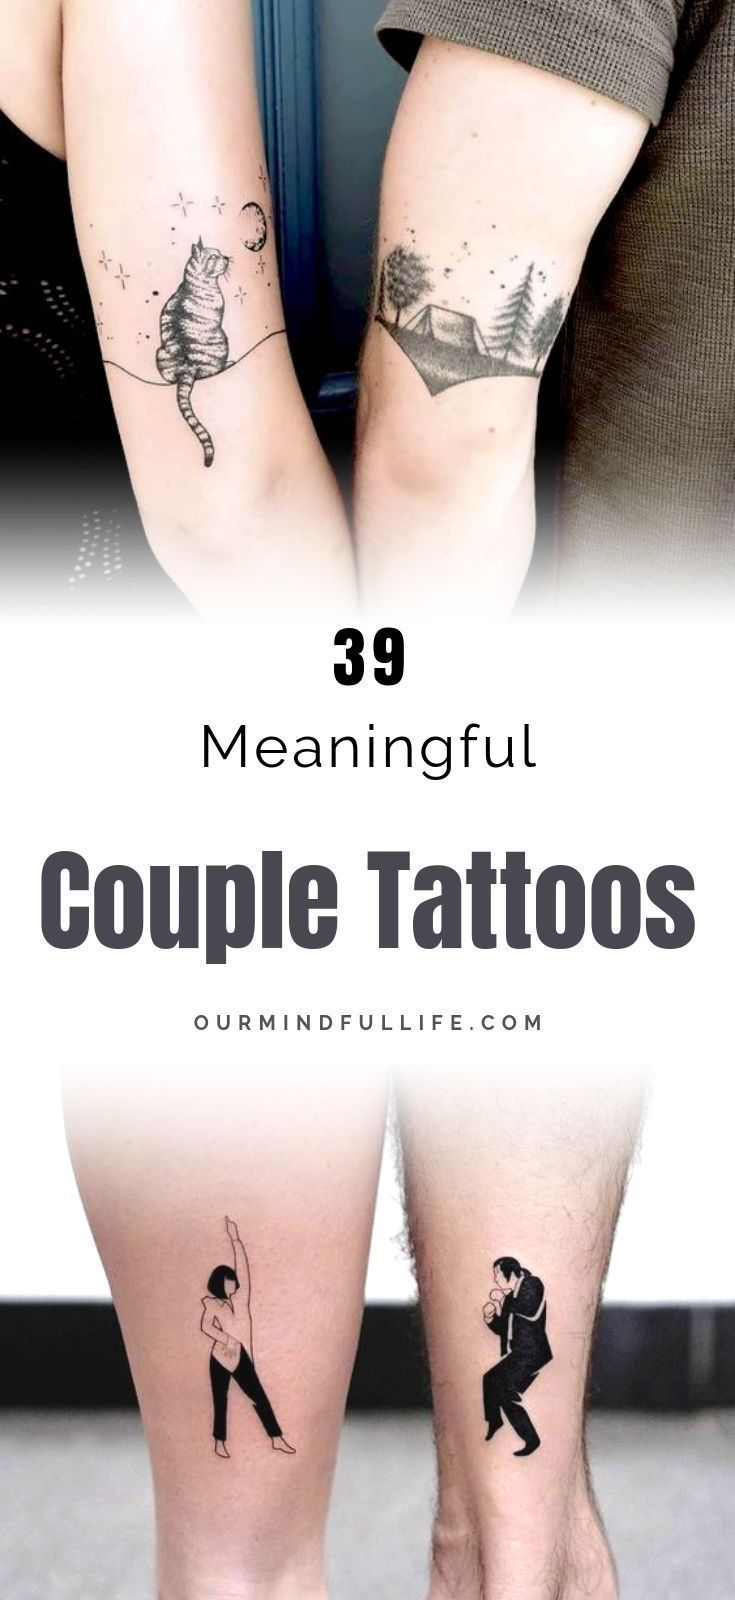 109 Romantic Couple Tattoos To Honor Your Relationship In 2020 Romantic Couples Tattoos Matching Couple Tattoos Meaningful Tattoos For Couples